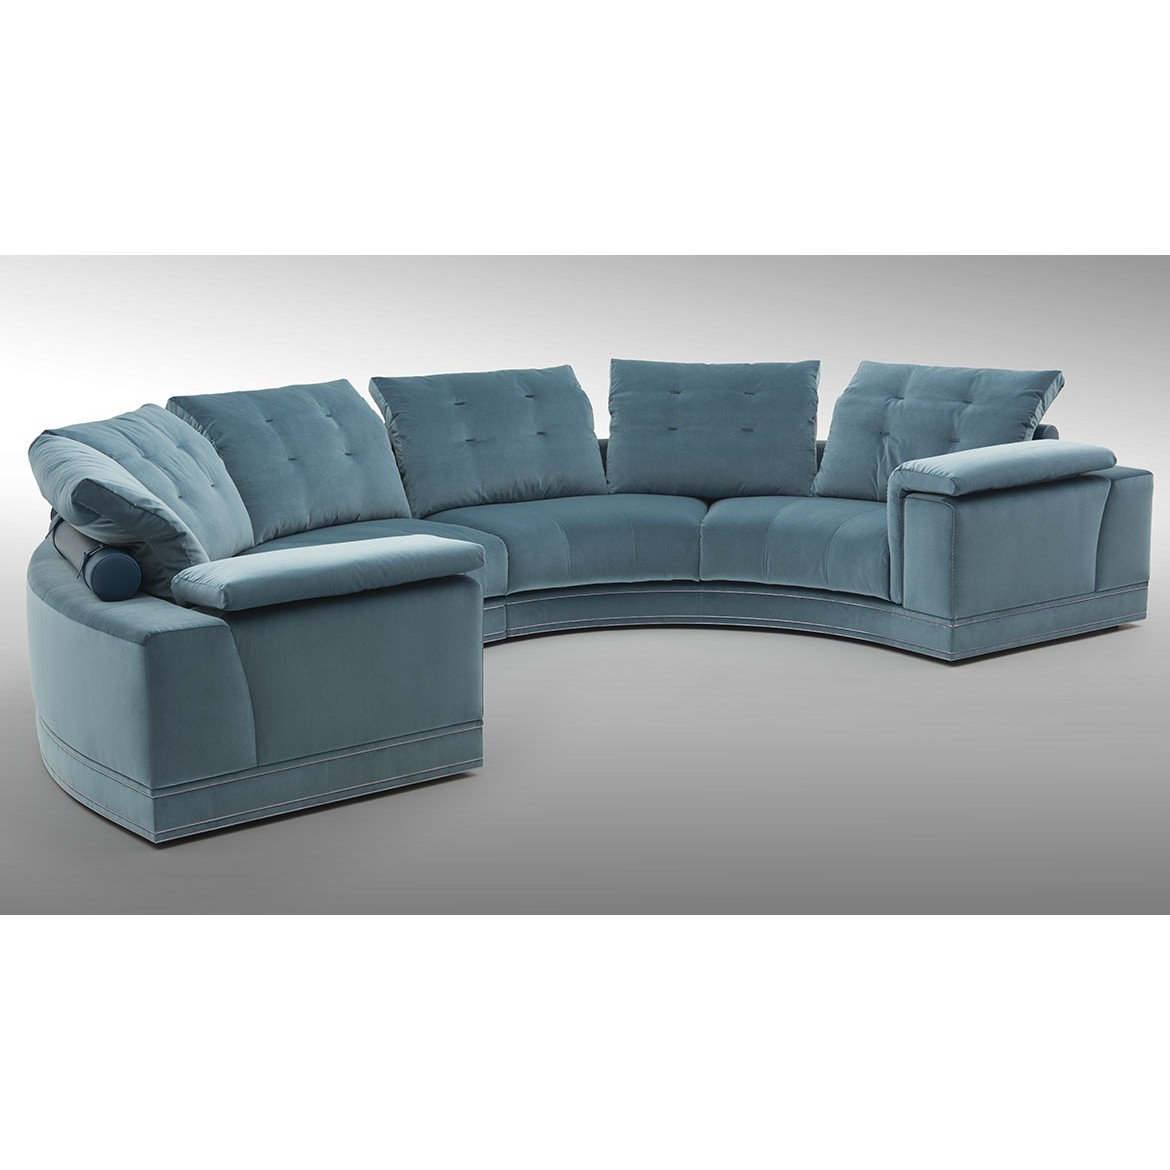 Диван Andrew Sectional Sofa, дизайн Fendi Casa